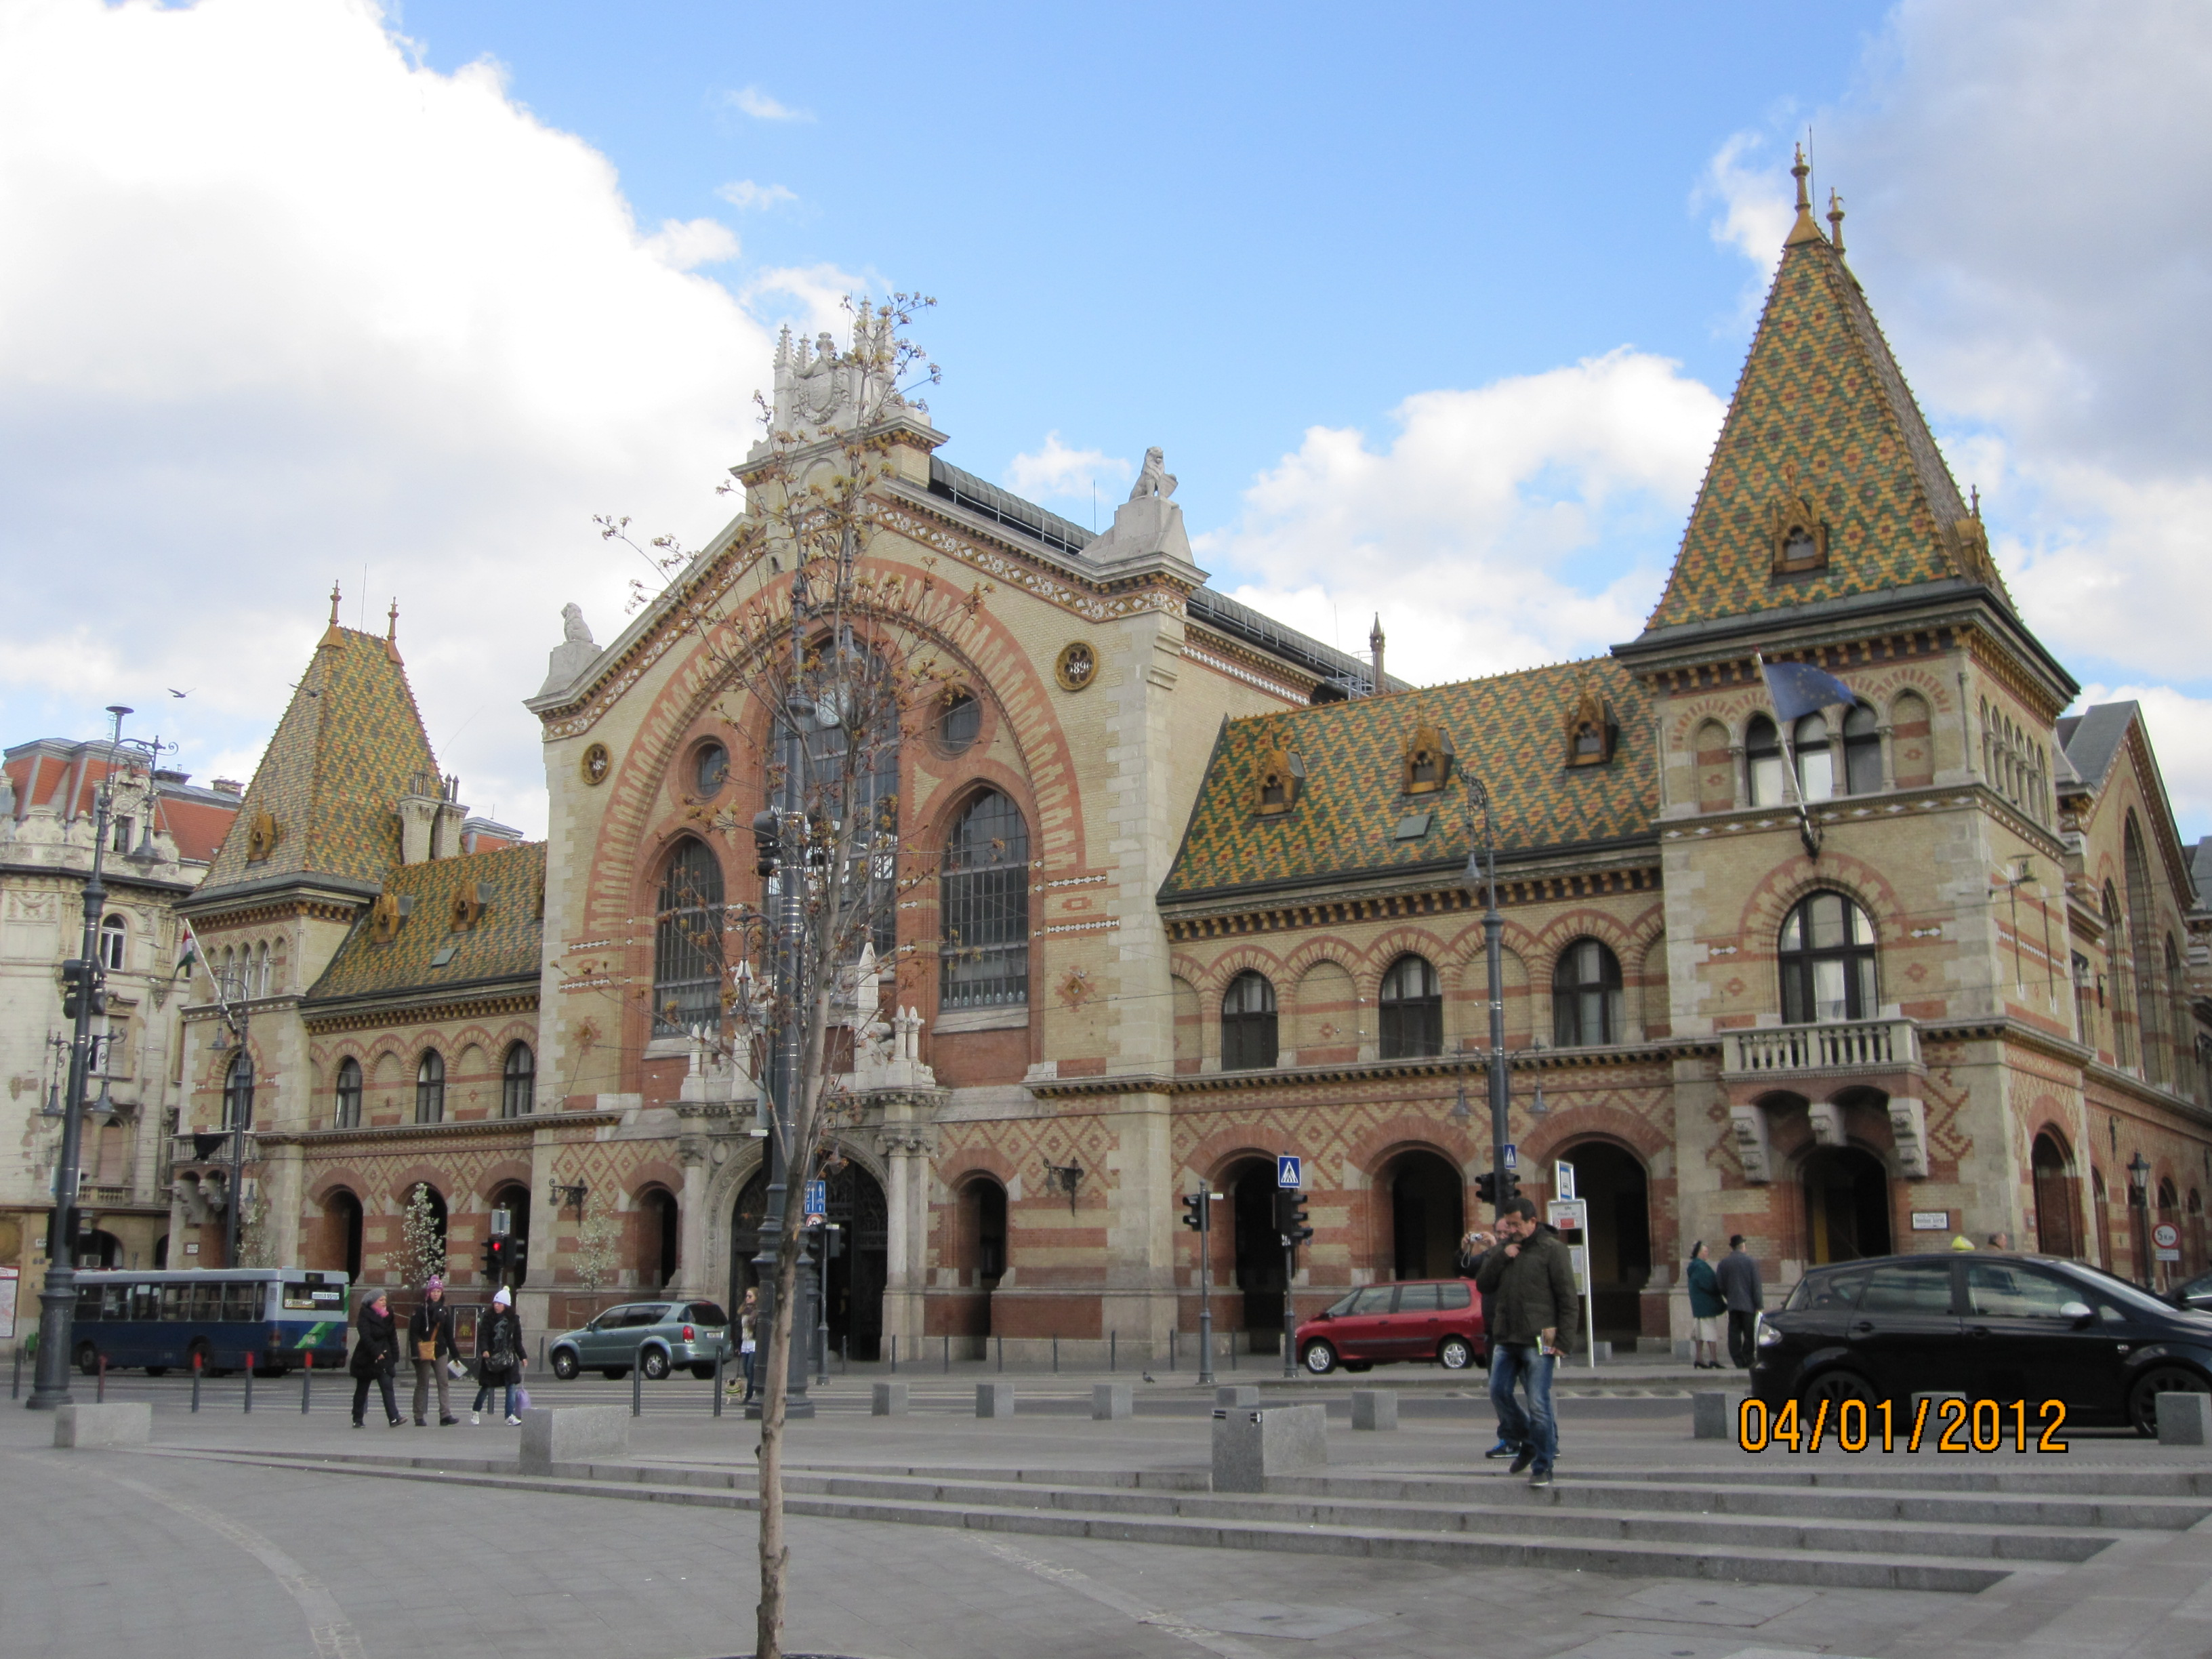 There was as many tourists as local residents shopping at the Central Market, in Budapest.